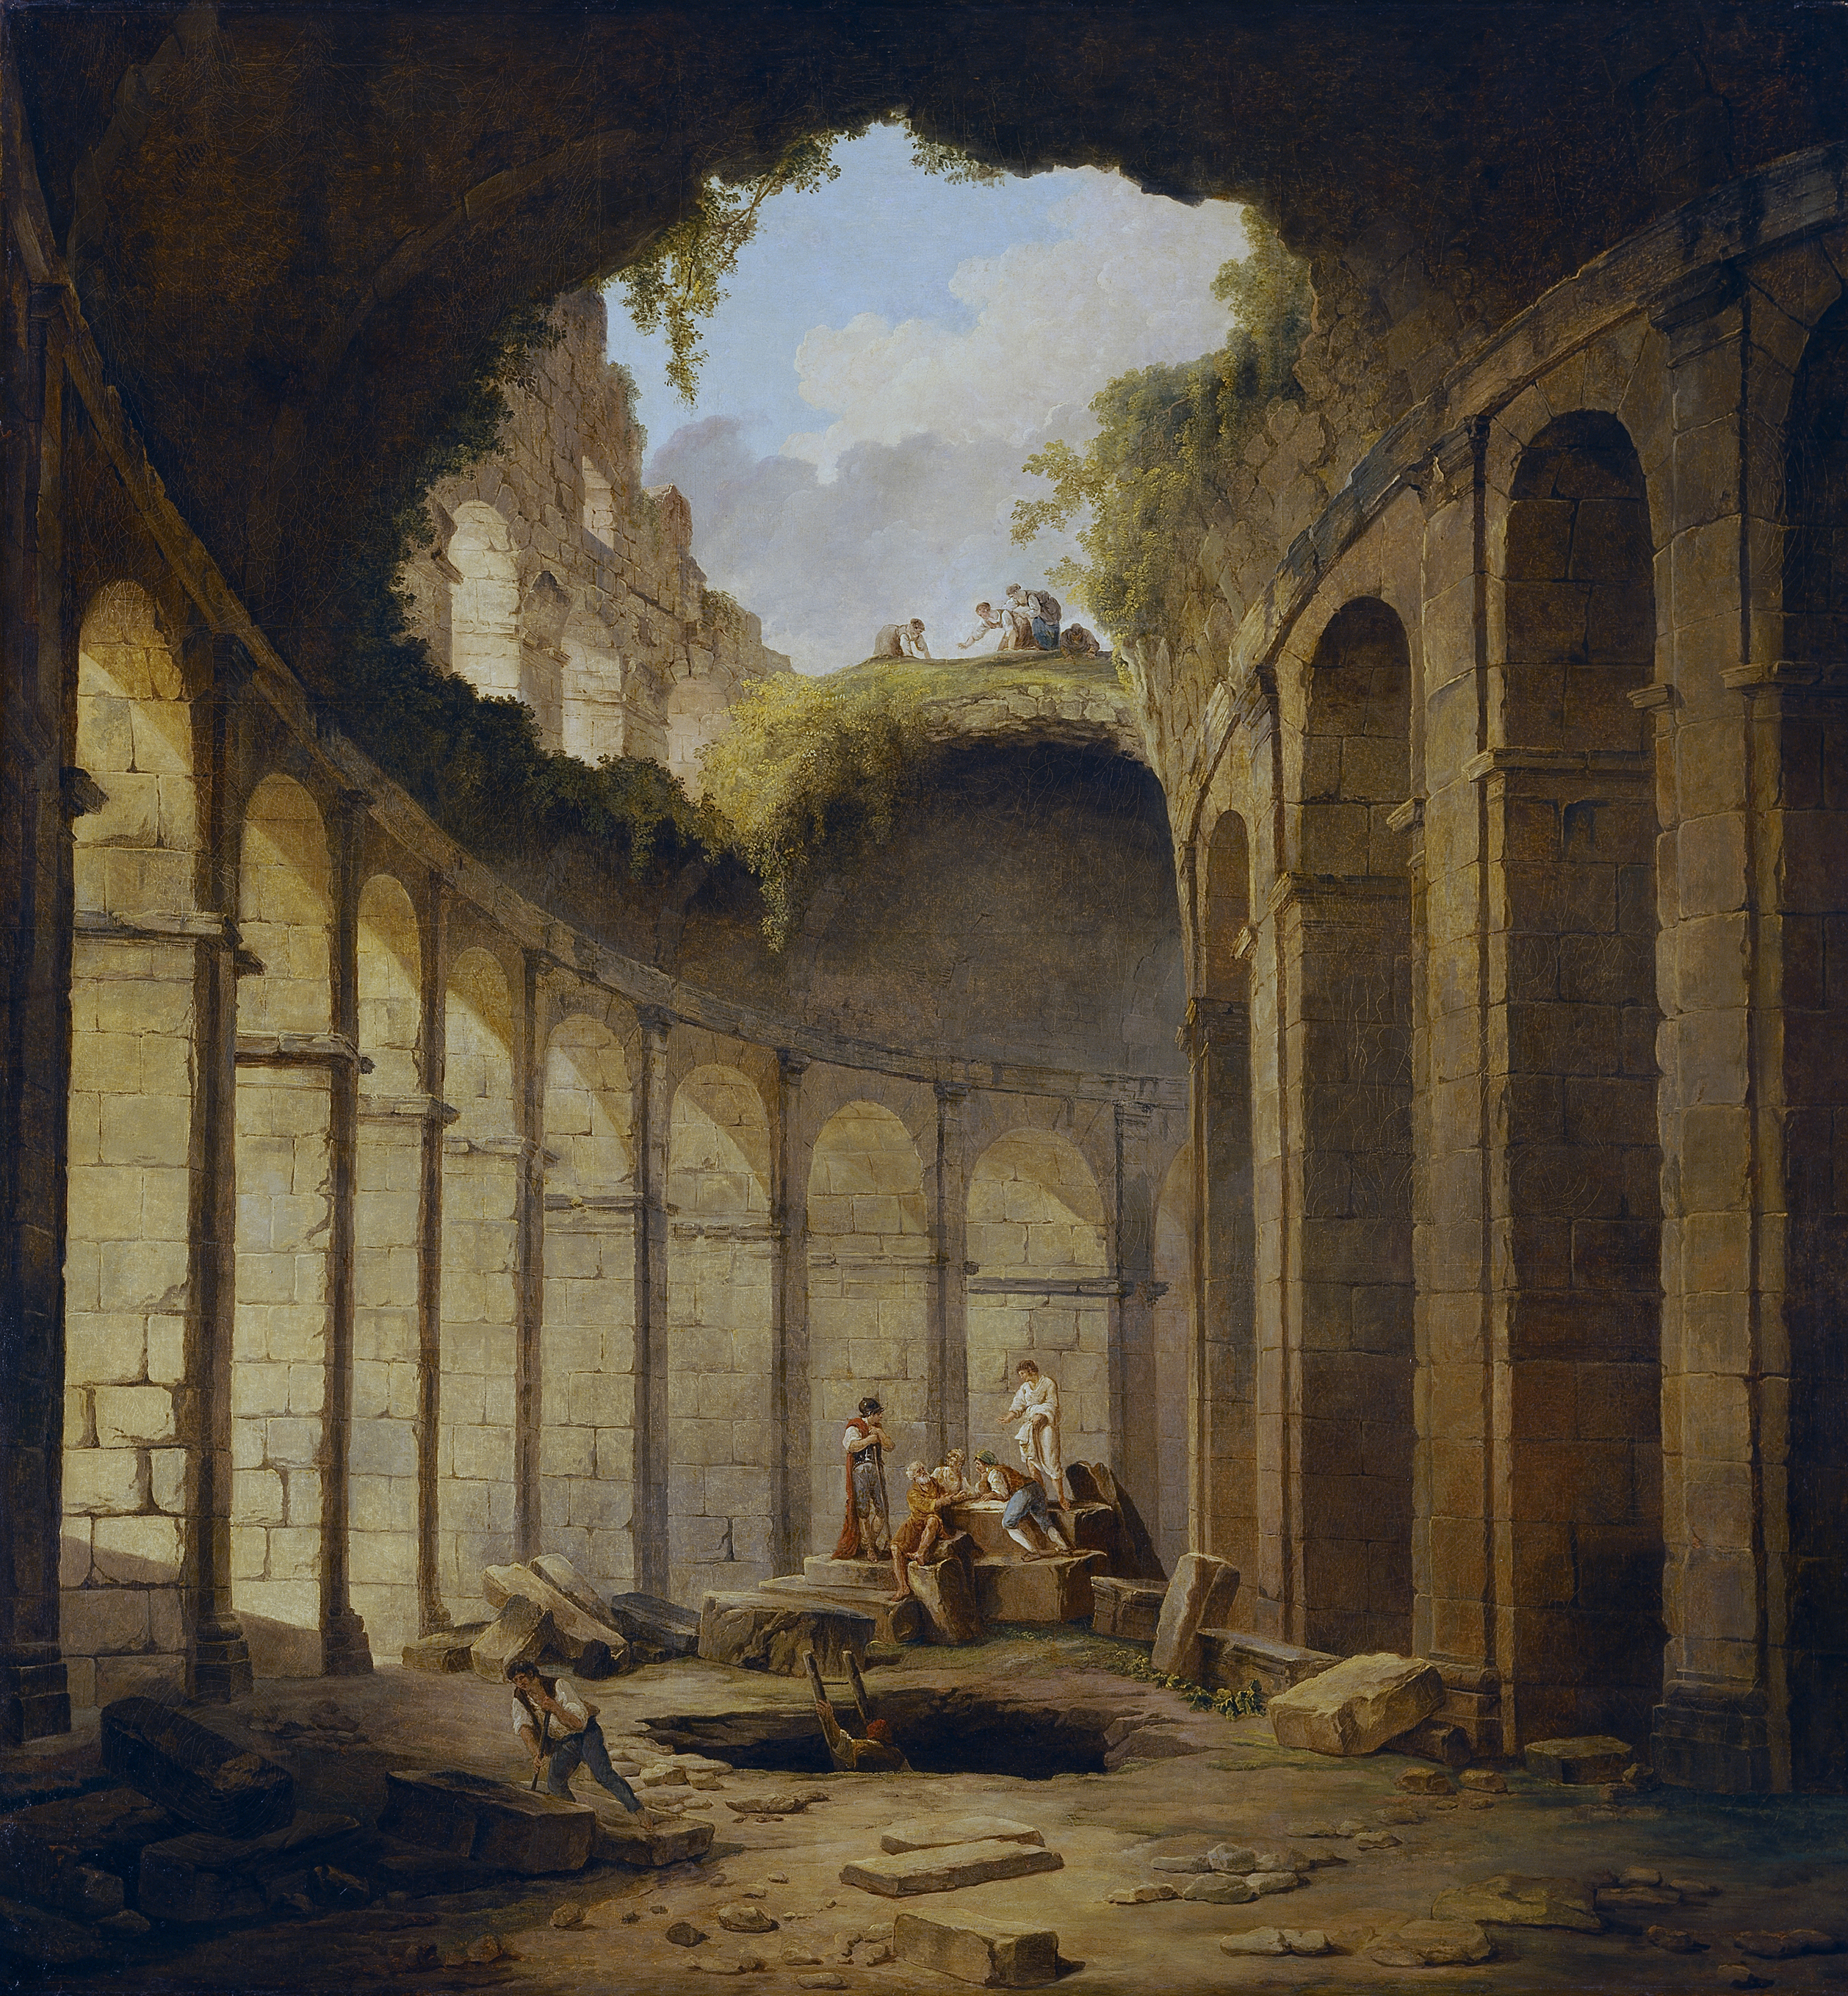 File El Coliseo de Roma  Hubert Robert together with Hagia Sophia Istanbul Frederic Kohli additionally 471470654733955298 furthermore 10198420 additionally What Is An Order Of Architecture 177516. on roman colosseum dimensions